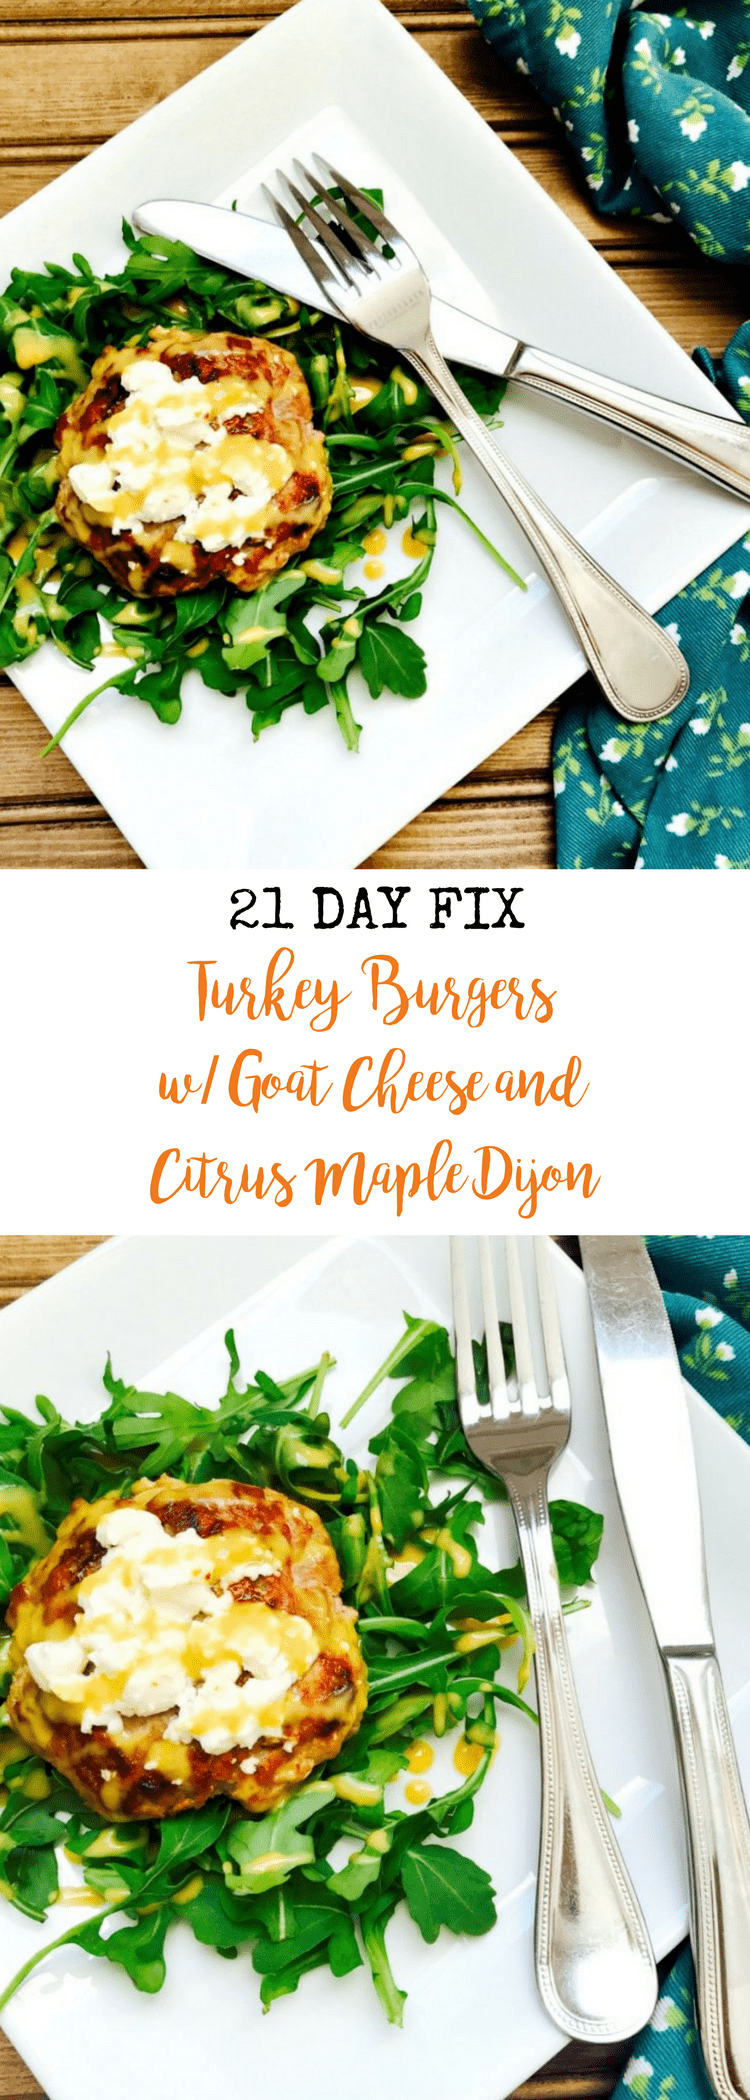 21 Day Fix Turkey Burgers with Goat Cheese and Citrus Maple Dijon |  Confessions of a Fit Foodie